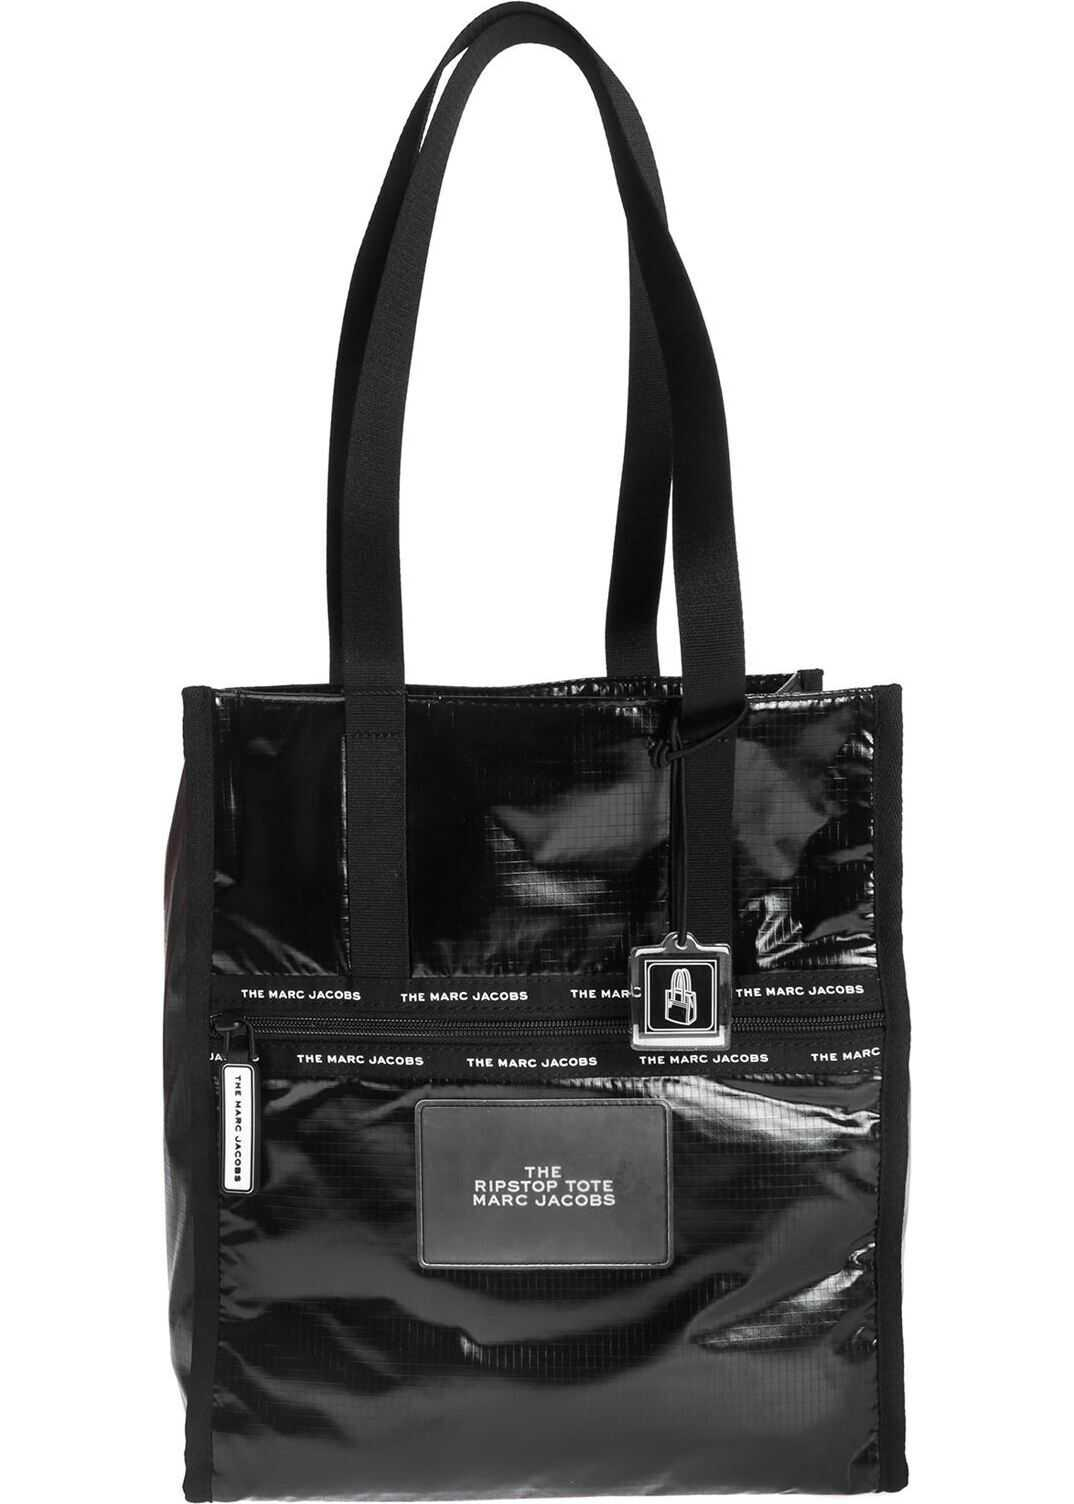 Marc Jacobs The Ripstop Tote Bag In Glossy Black Black